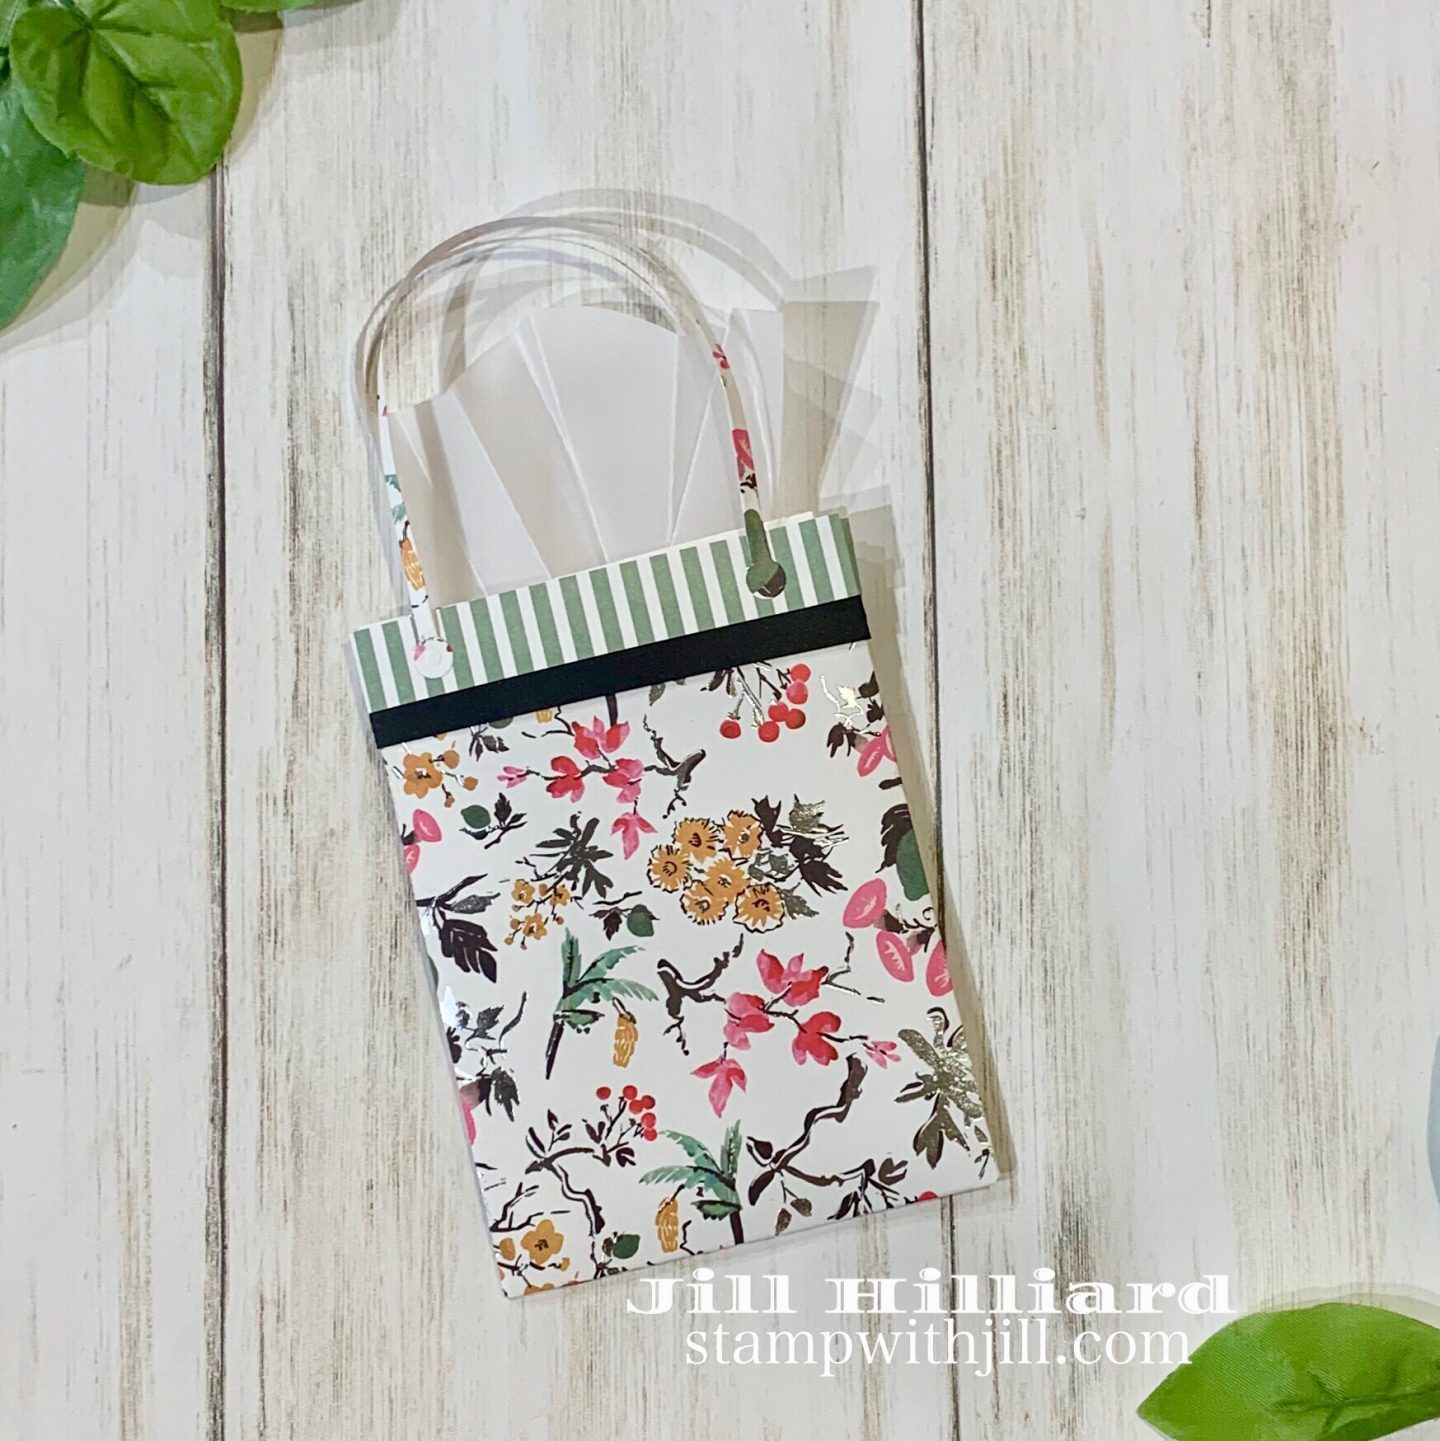 Stamp with Jill, Spellbinders April 2019 Large Die of the month- For You gift card holder